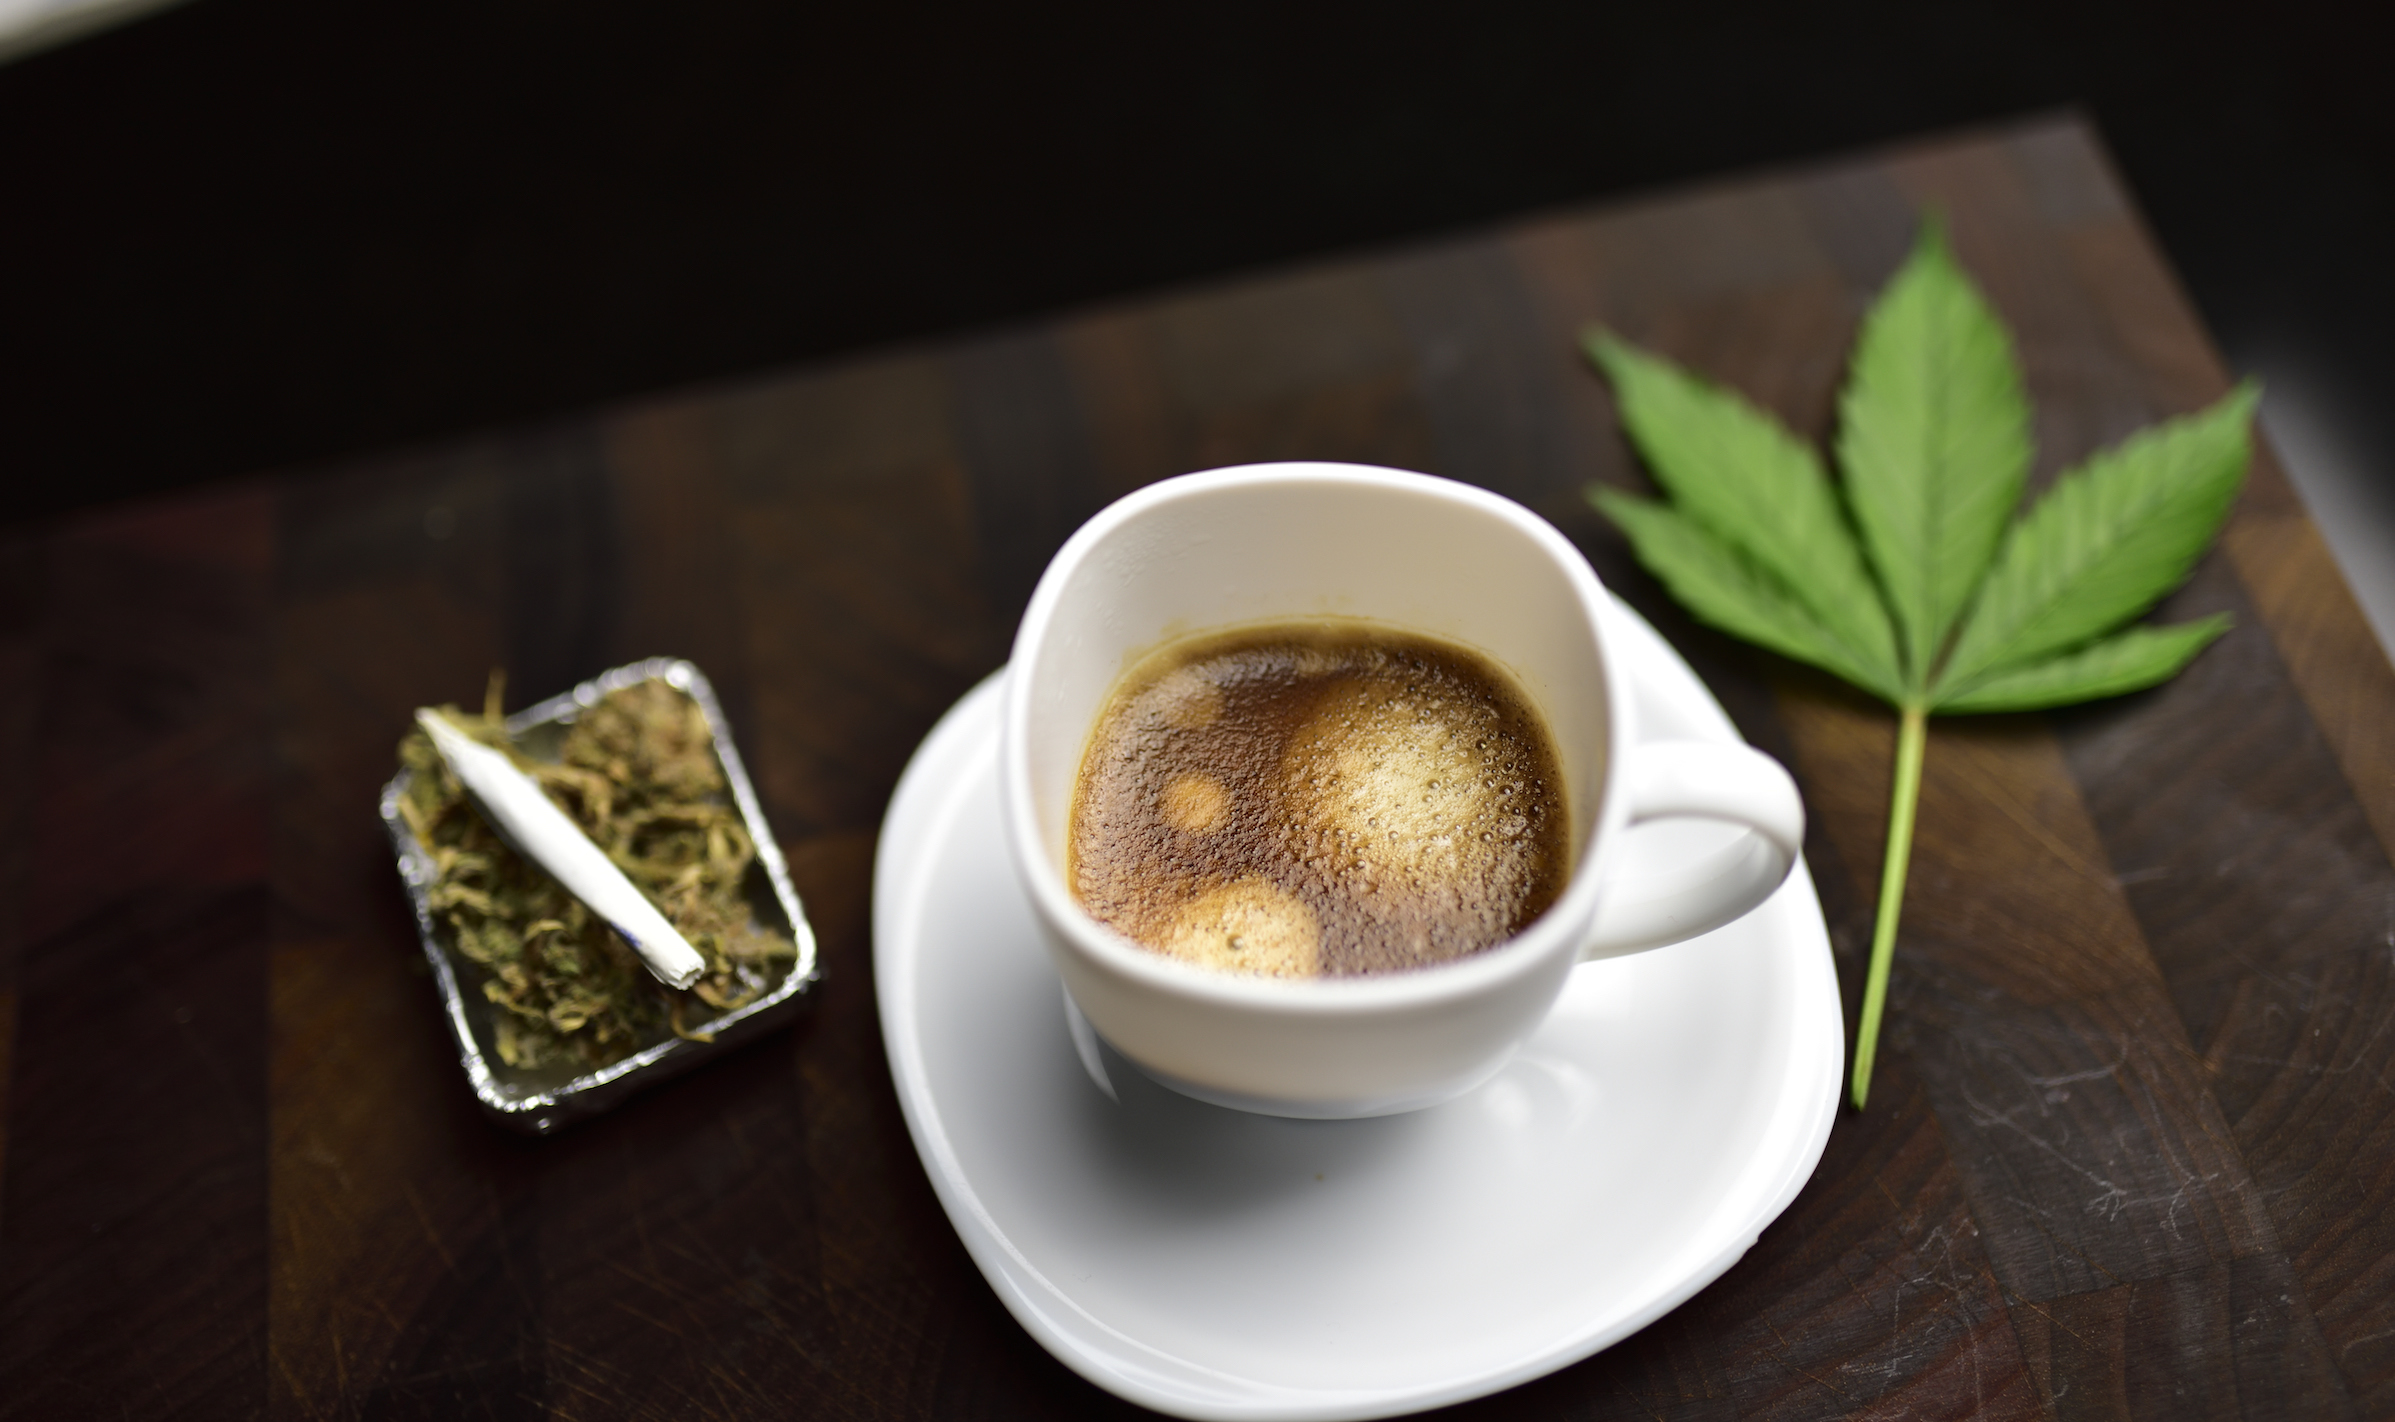 New research reveals an interesting connection between the coffee you can find across the street, and the cannabis that may be on your corner (legally) in no time.